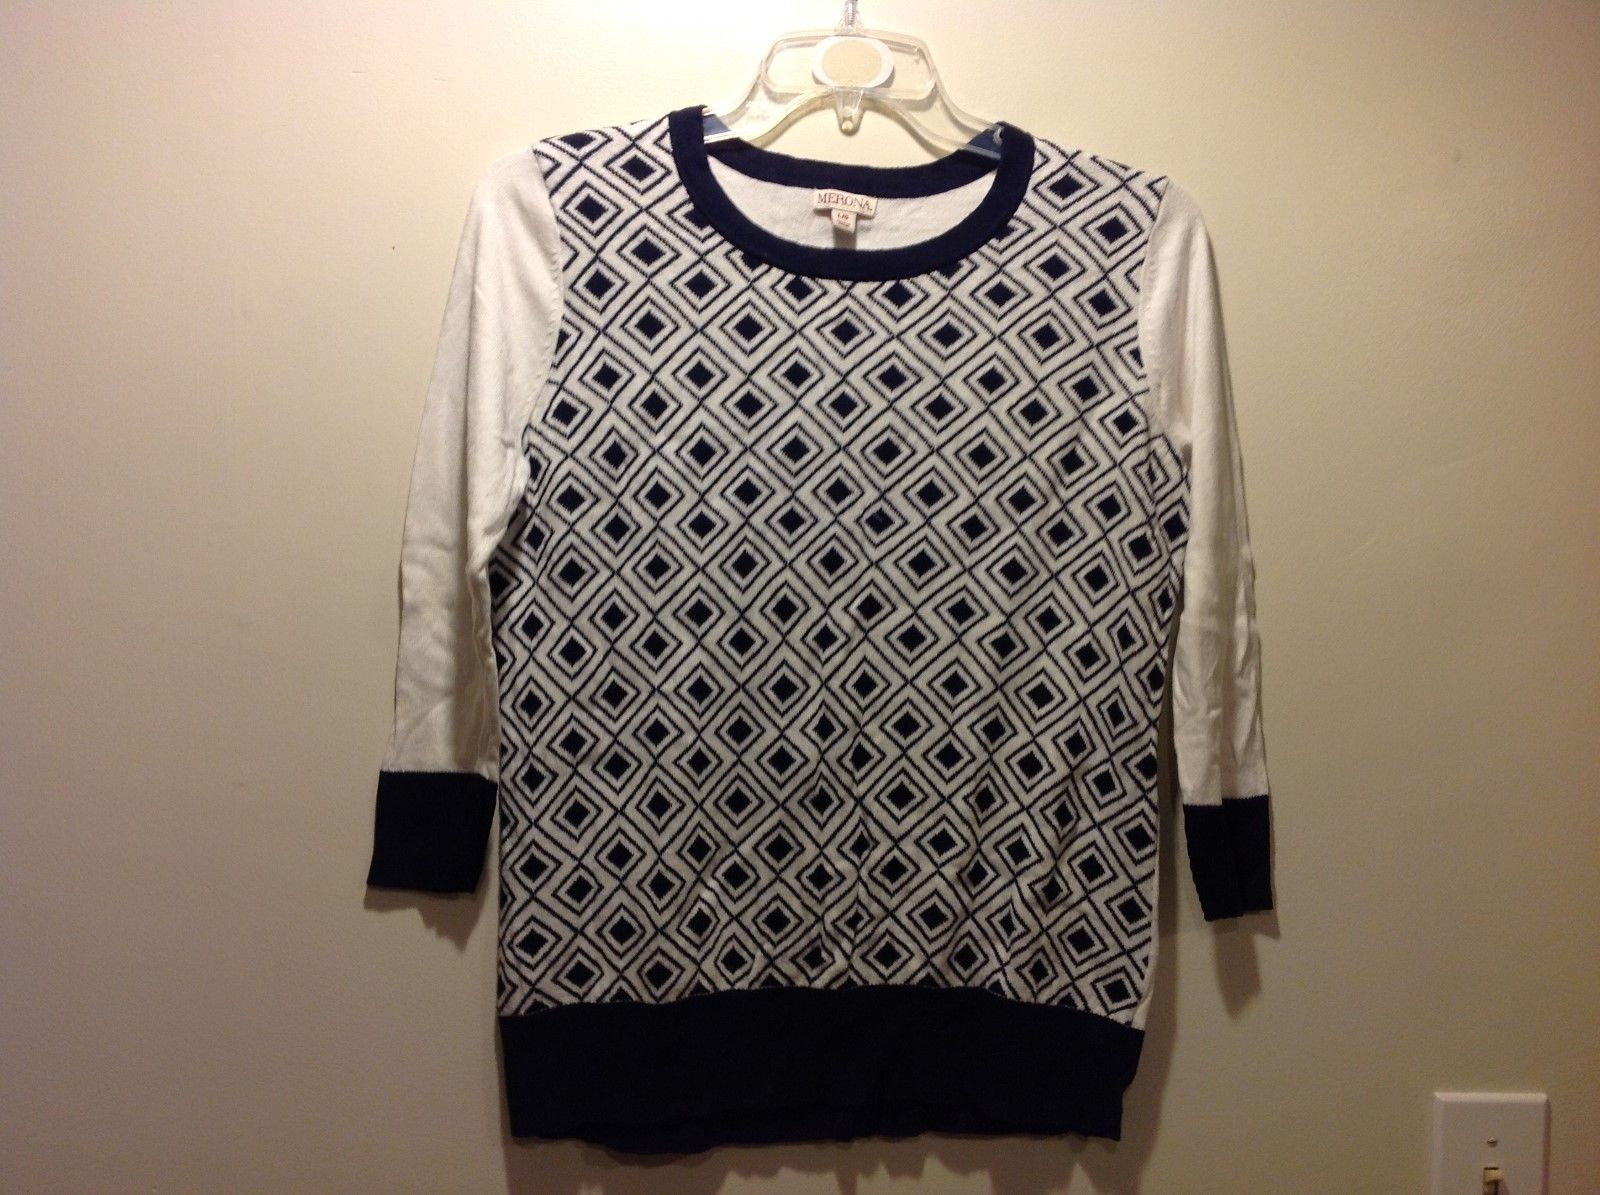 Large Navy Blue White Sweater w Geometric Patterned Torso w White Sleeves